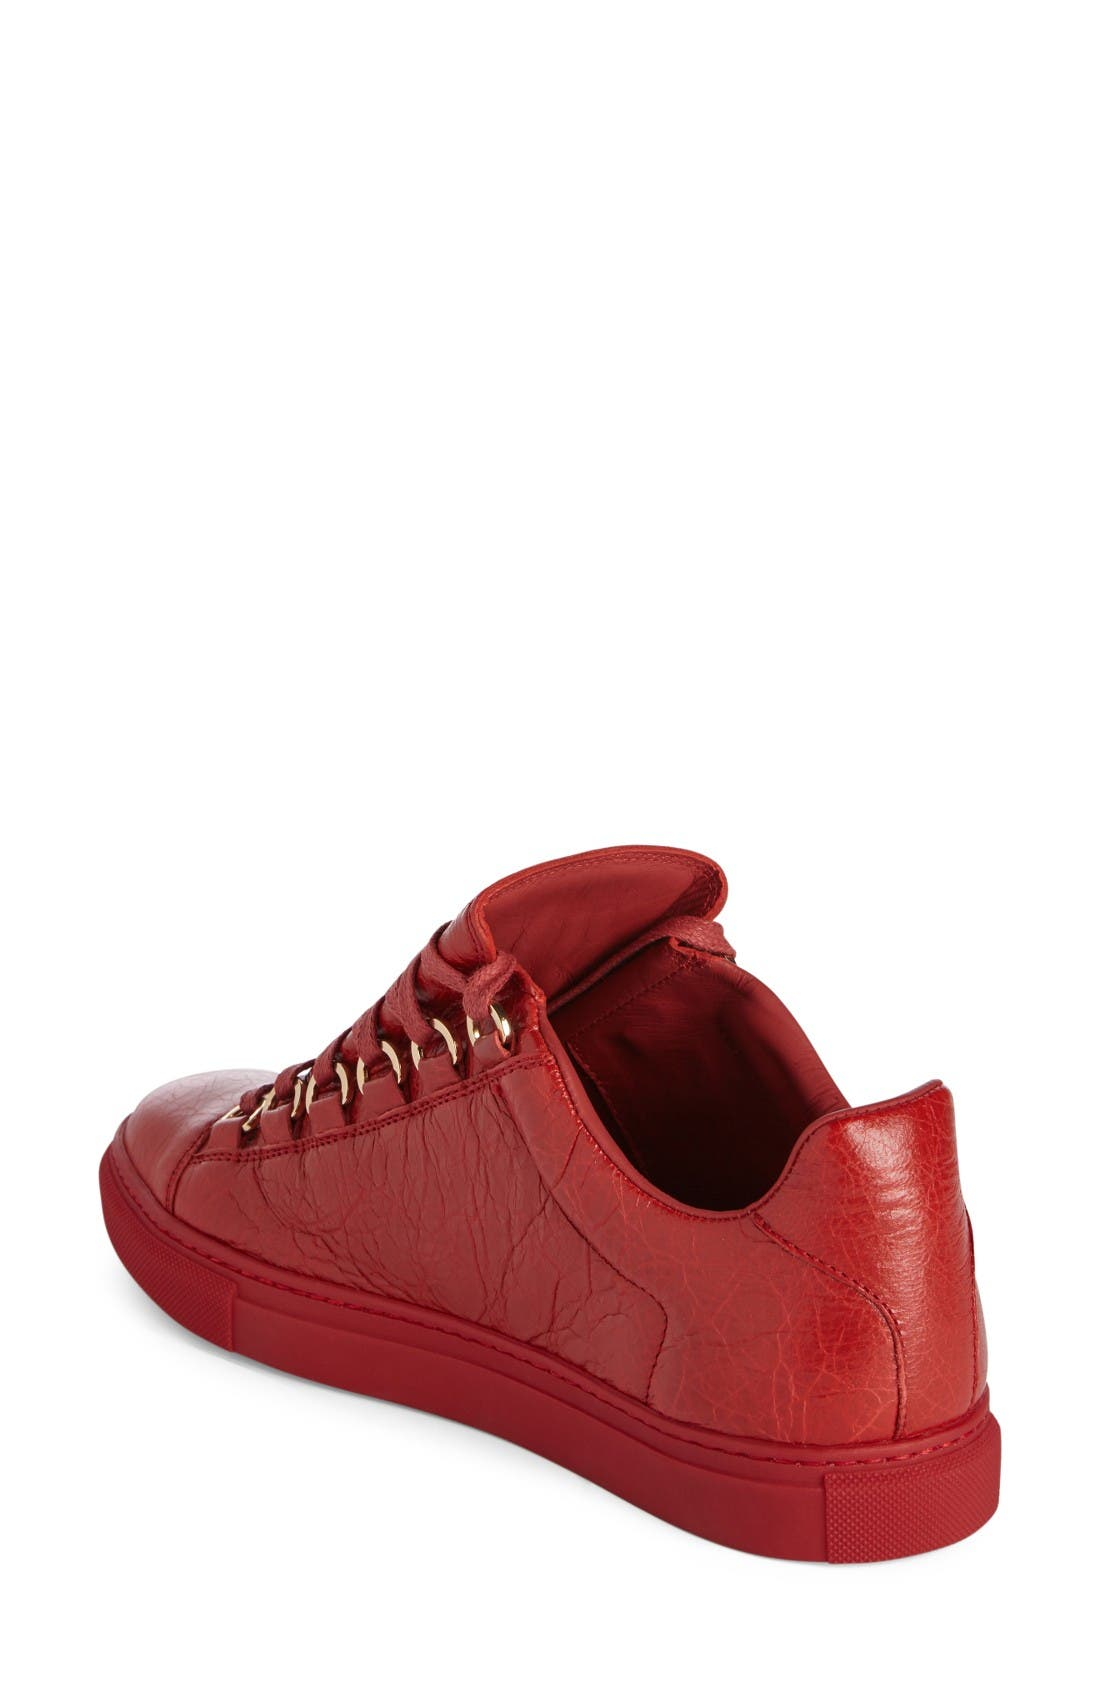 Low Top Sneaker,                             Alternate thumbnail 2, color,                             Red Leather